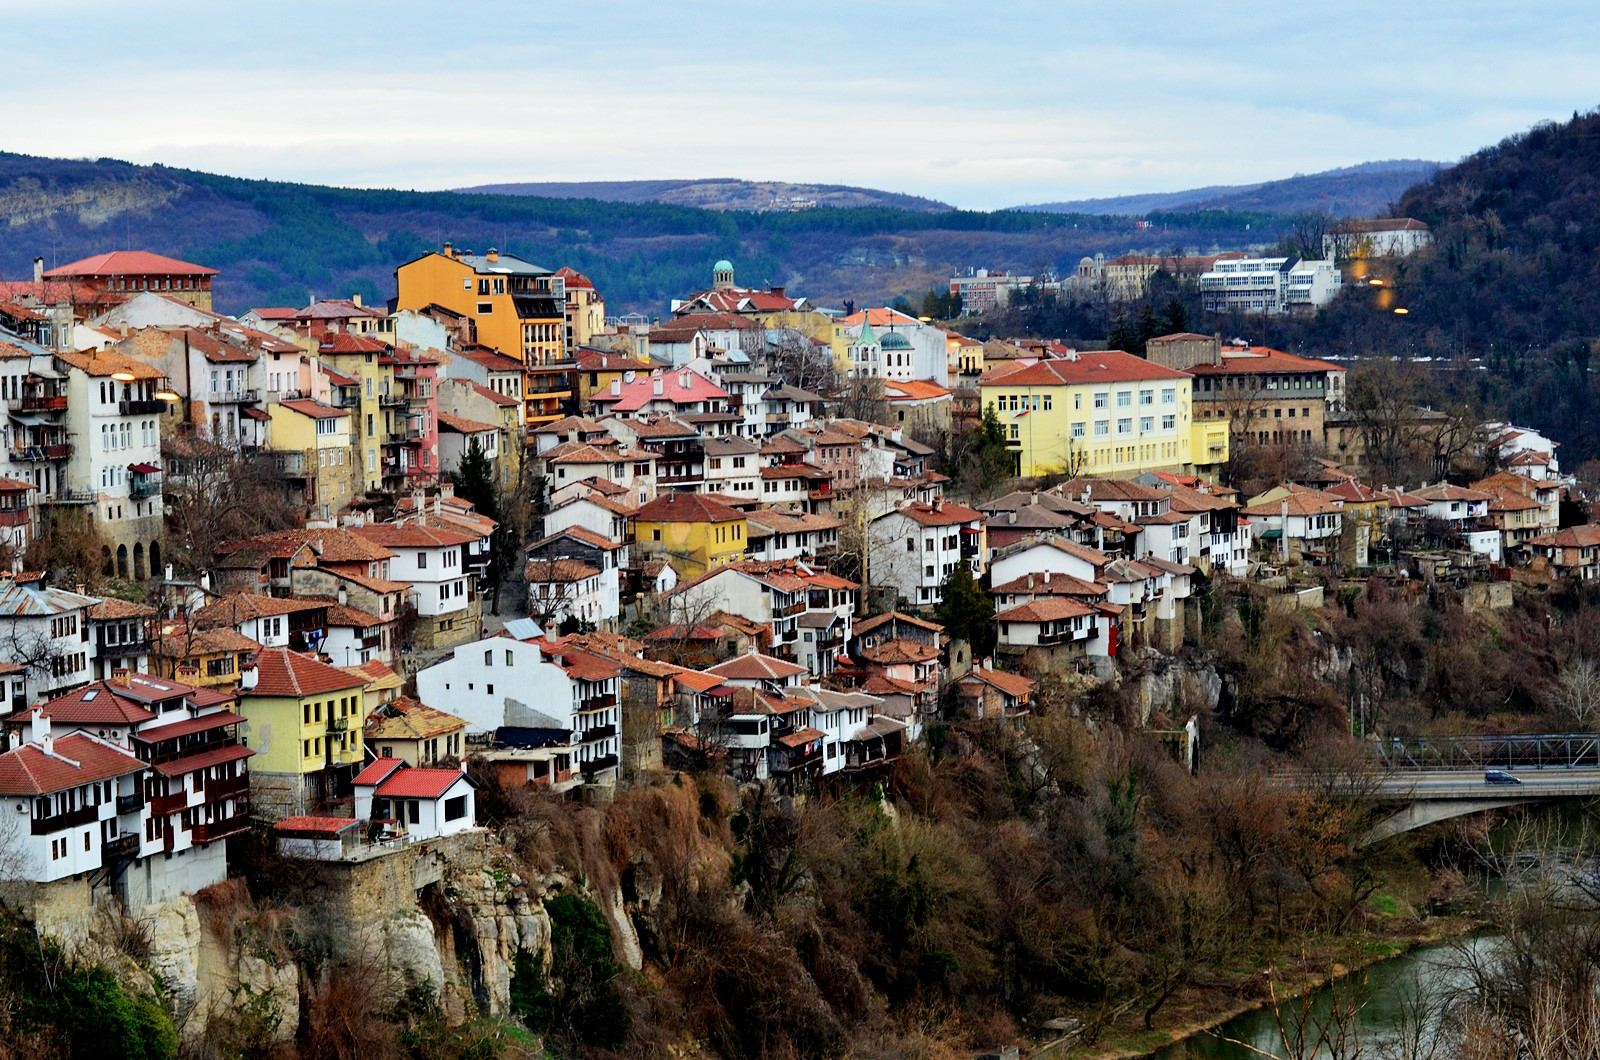 https://calatoriisifarfurii.ro/wp-content/uploads/2017/03/veliko_tarnovo_houses.jpg